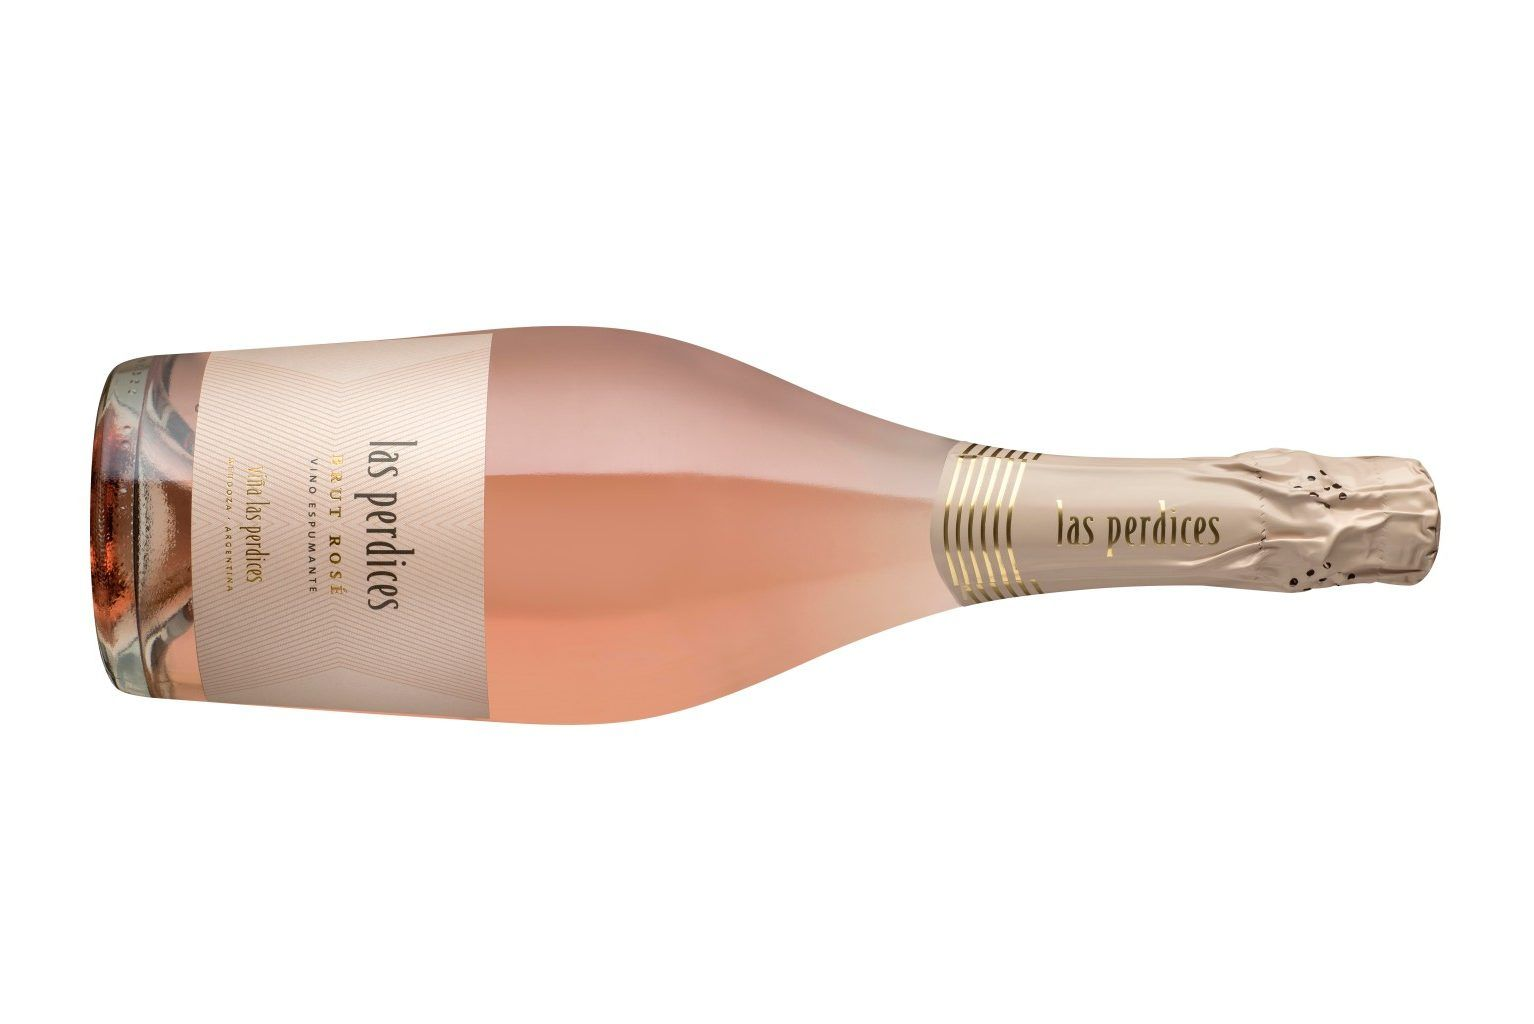 Las Perdices Espumante Brut Rosé